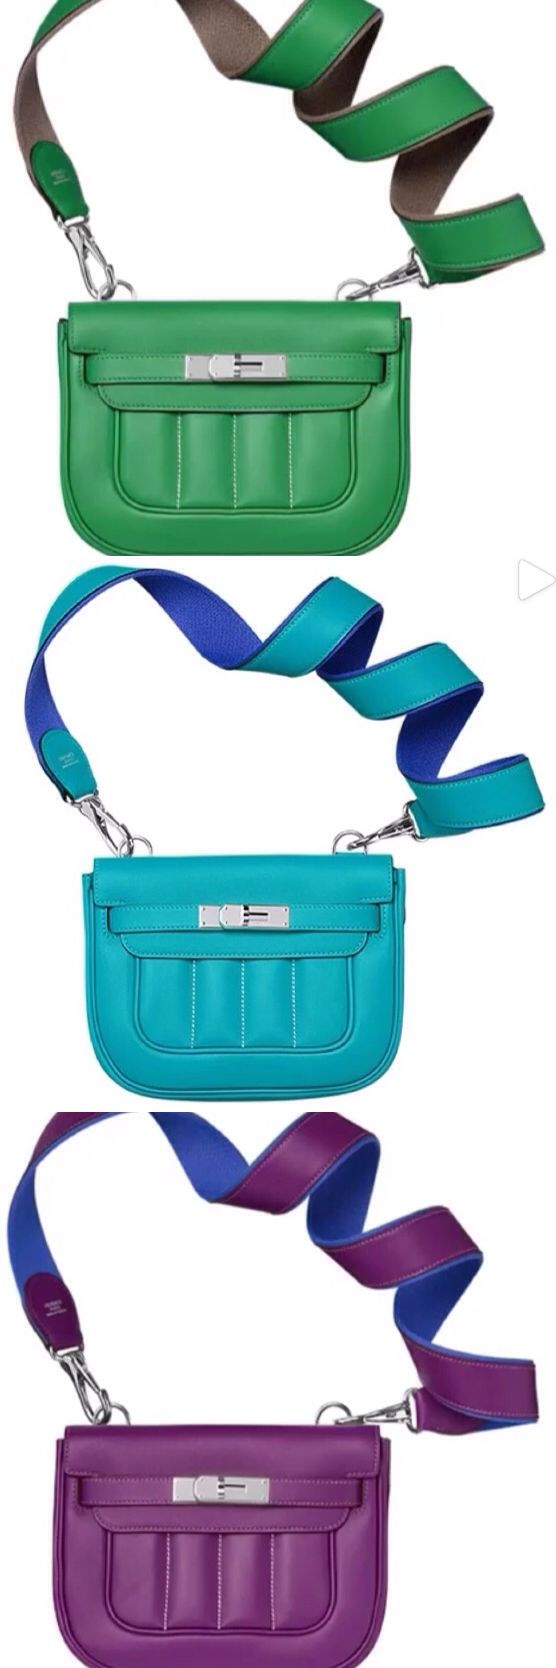 #Hermes mini Berline Bag-Summer 2015 Collage by #Luxurydotcom - pics twitter.com